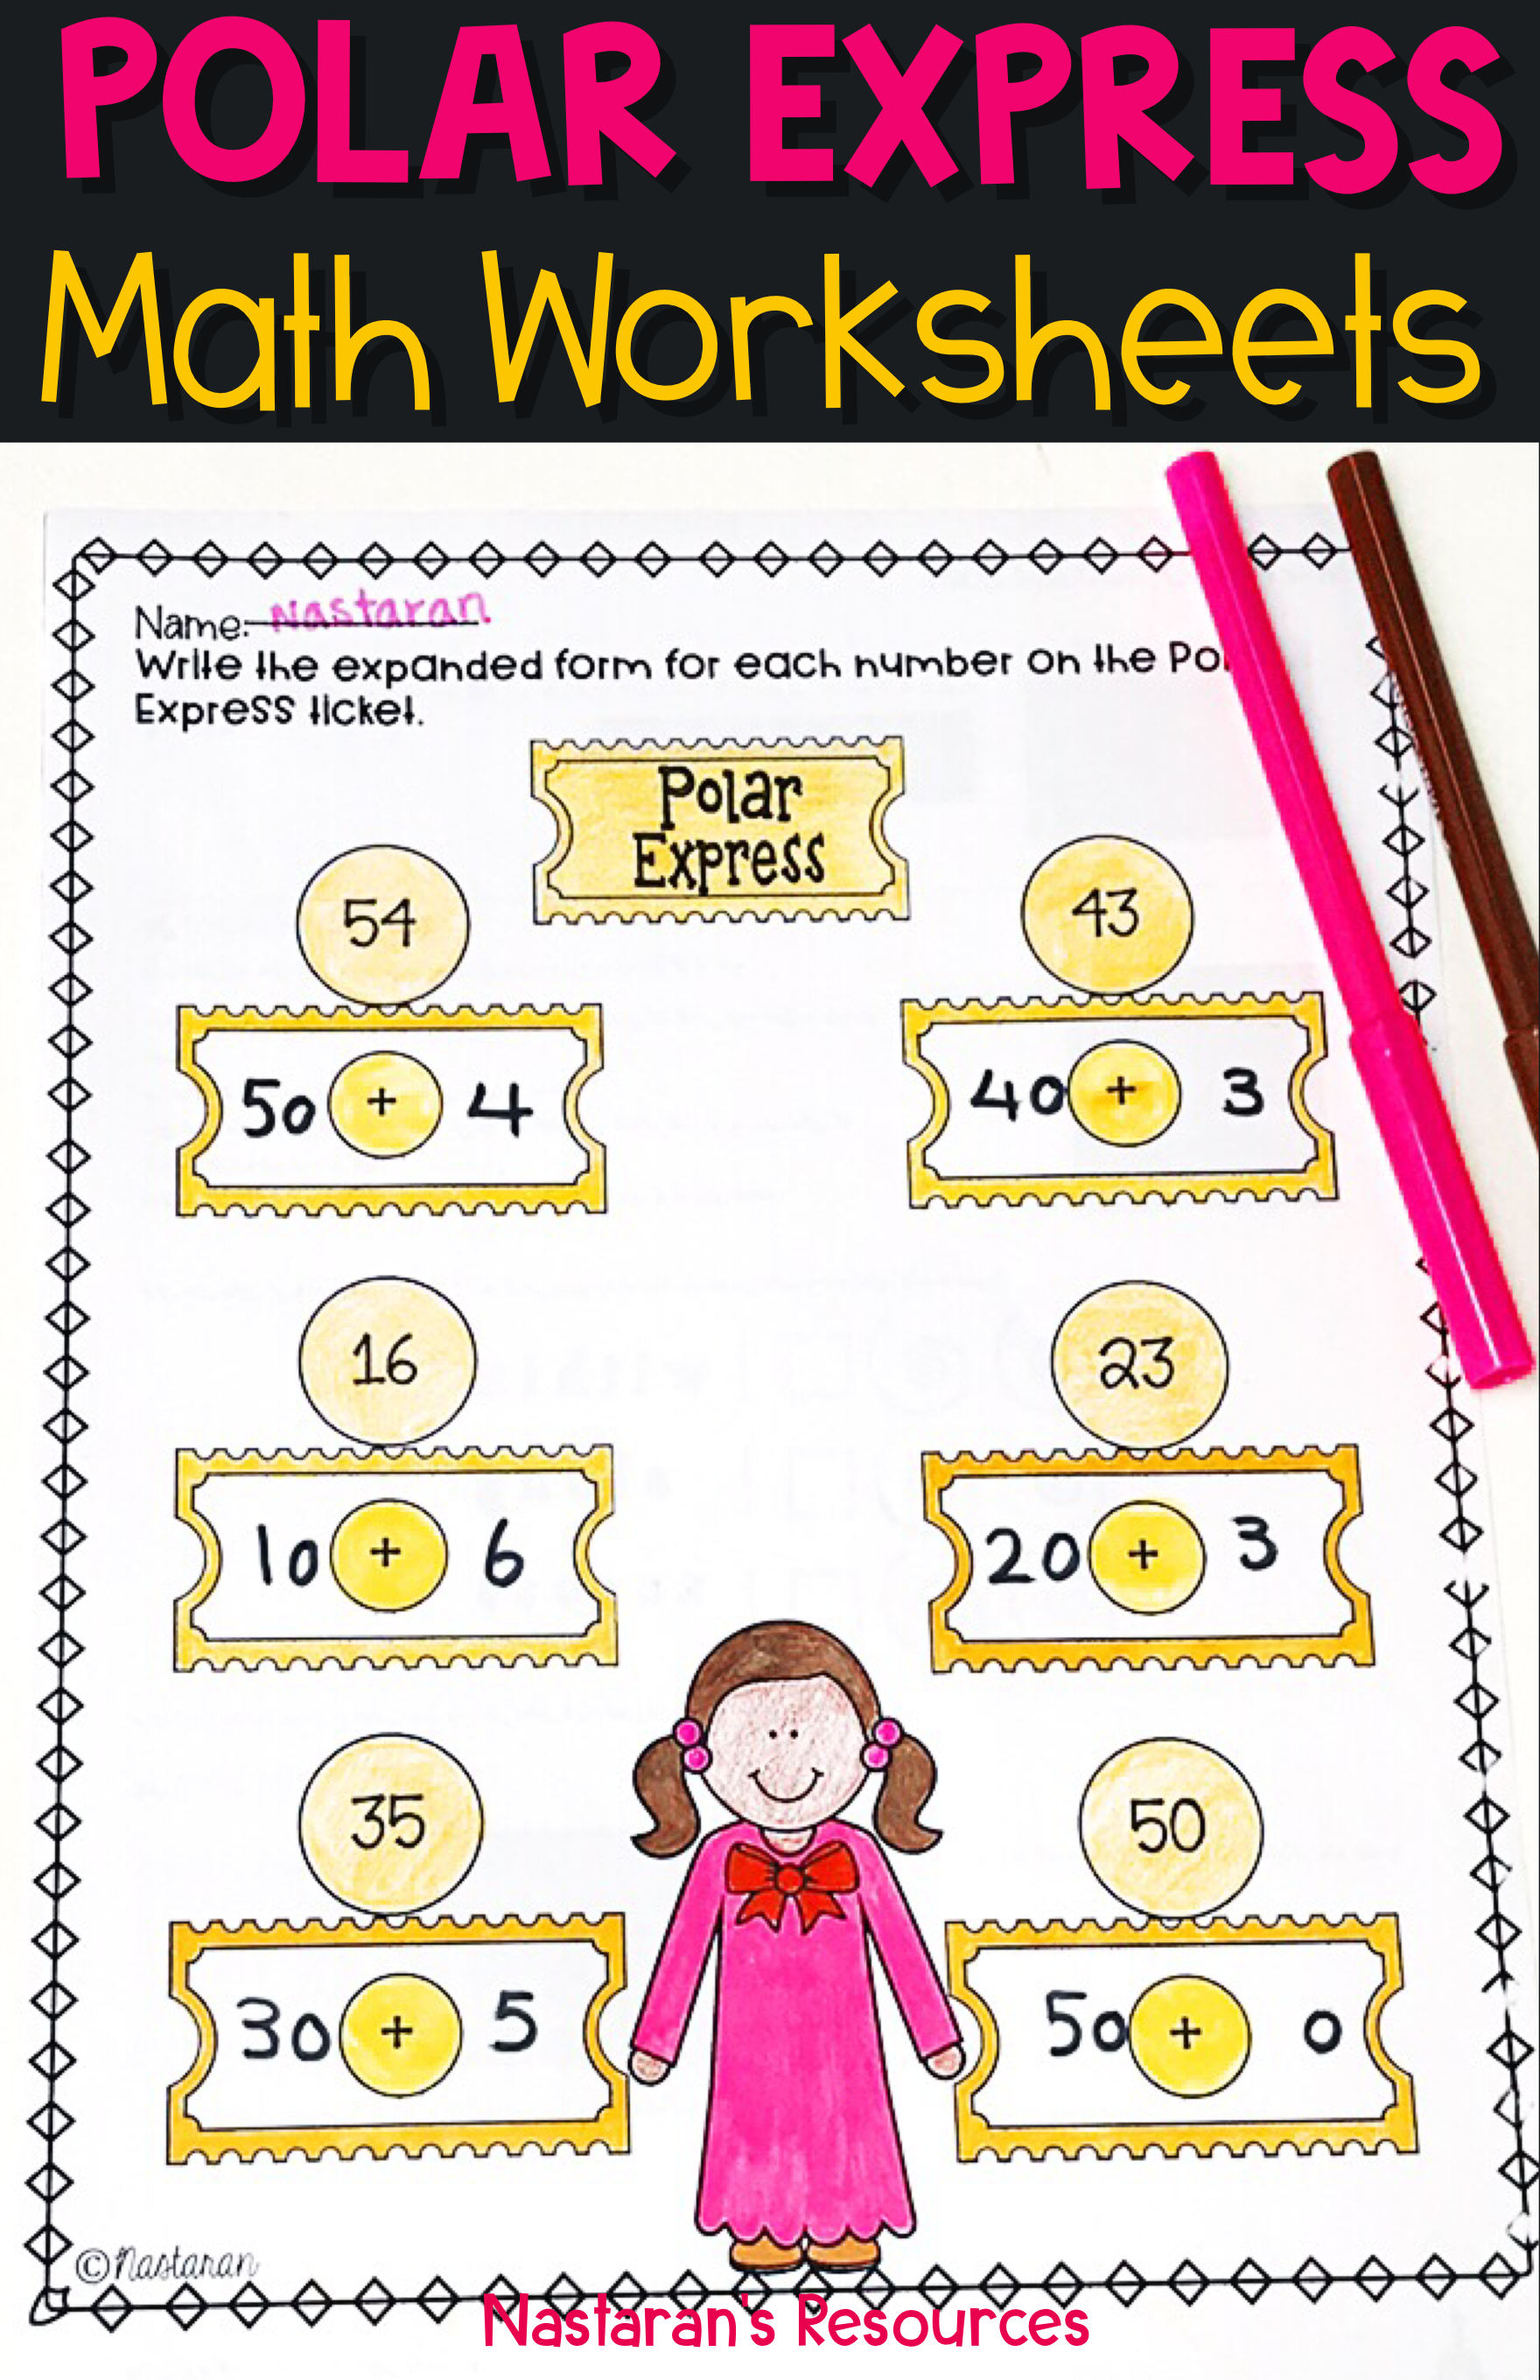 Polar Express Math Activities Perfect For Extra Practice During December Use These Worksheets For Your Students Math Worksheets Polar Express Activities Math